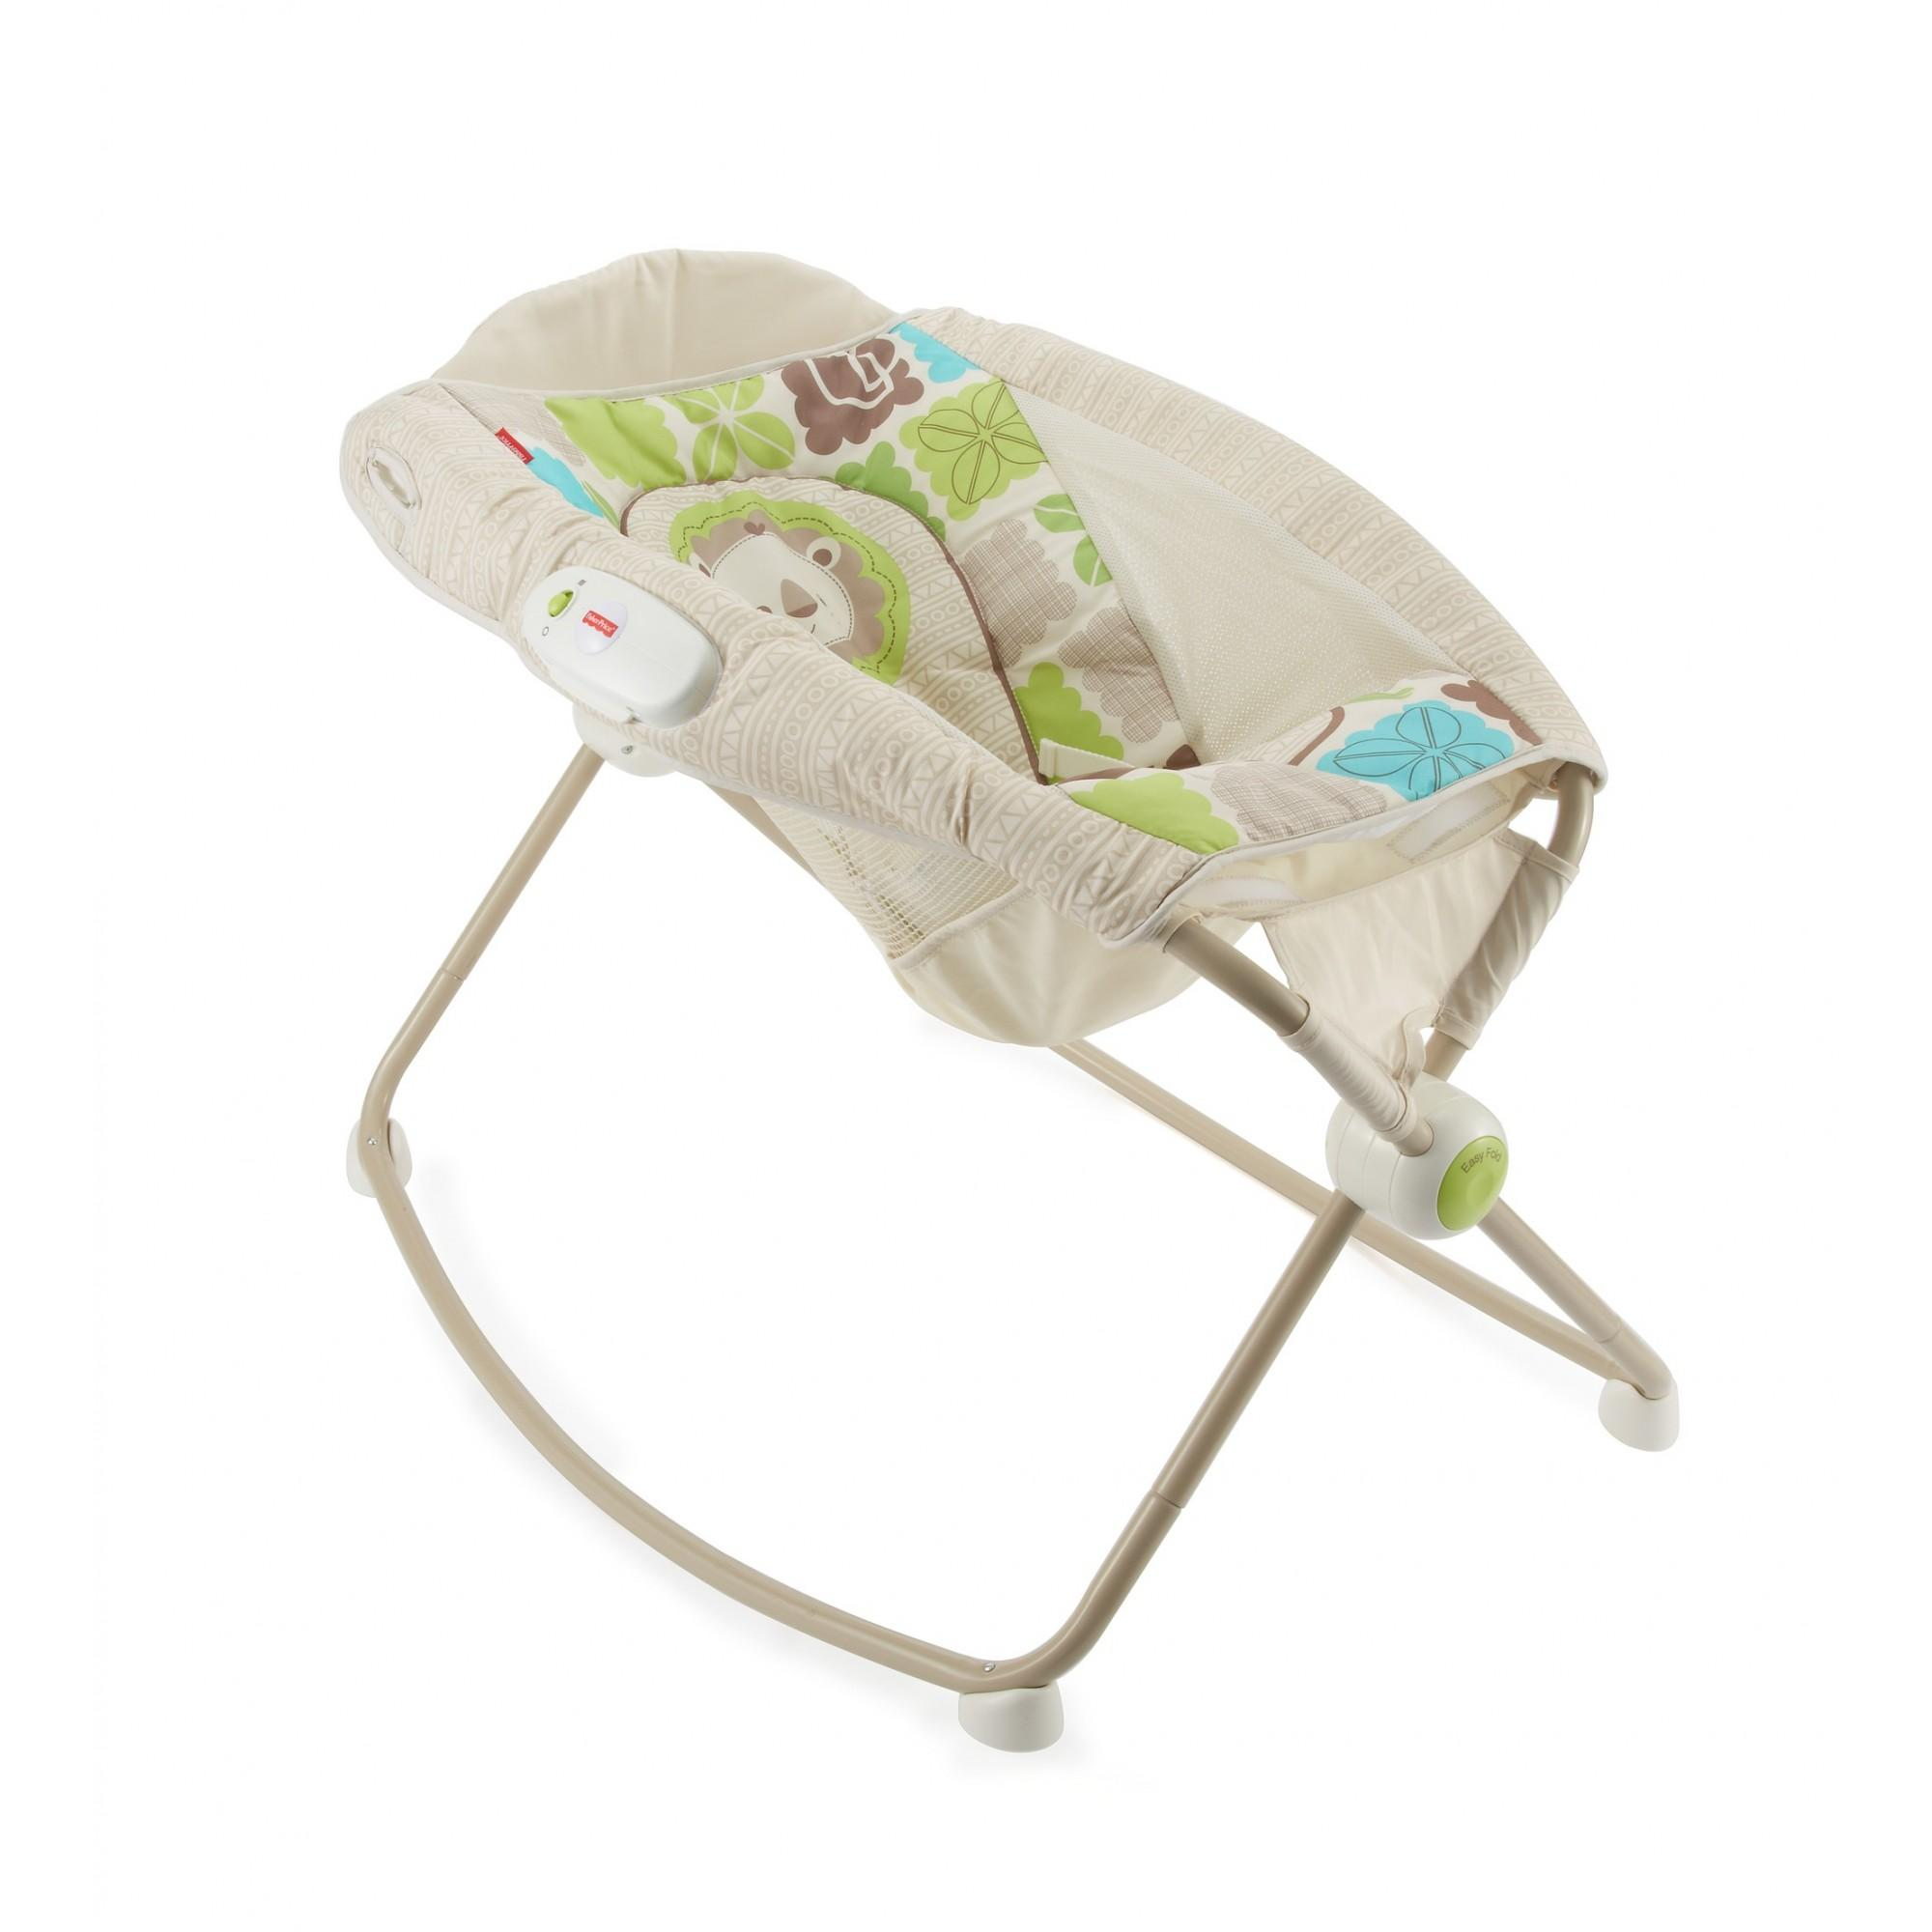 Fisher-Price Rainforest Friends Newborn Rock 'n Play Sleeper